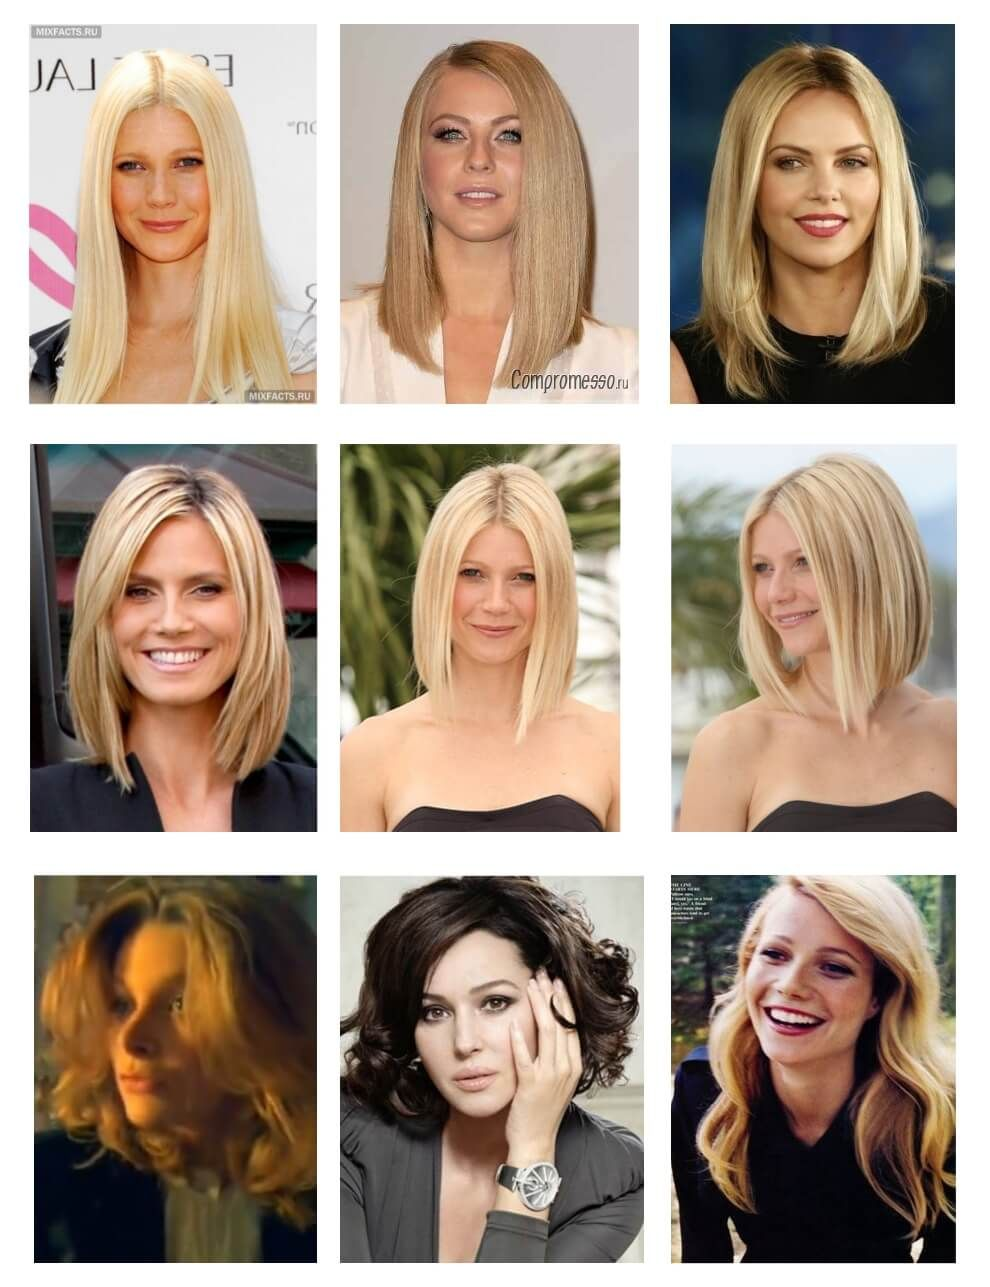 Possible hairstyles for oval face type - blondies #blonde #haircut ...